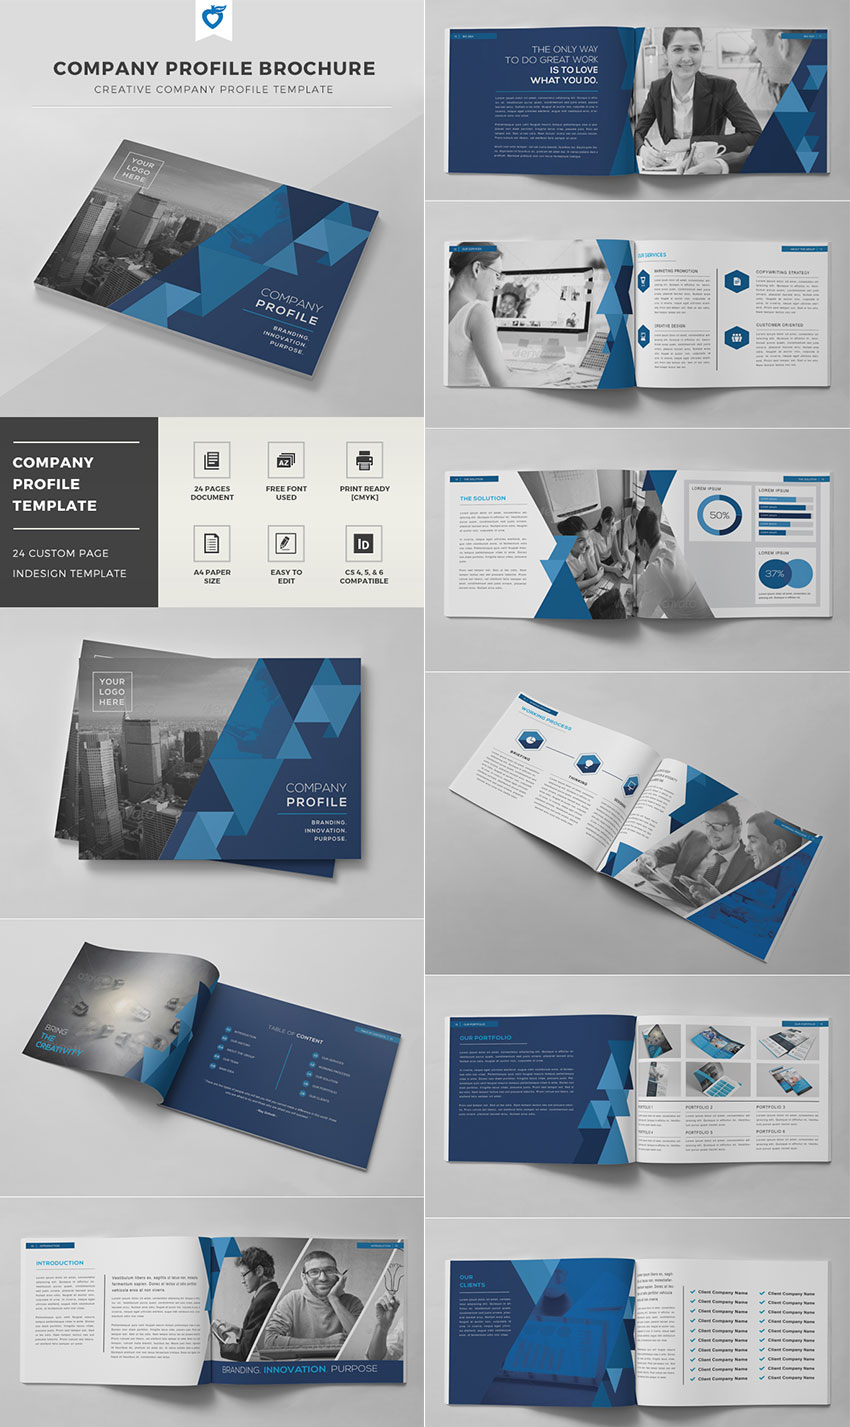 20 best indesign brochure templates for creative business marketing company profile brochure indd template accmission Image collections